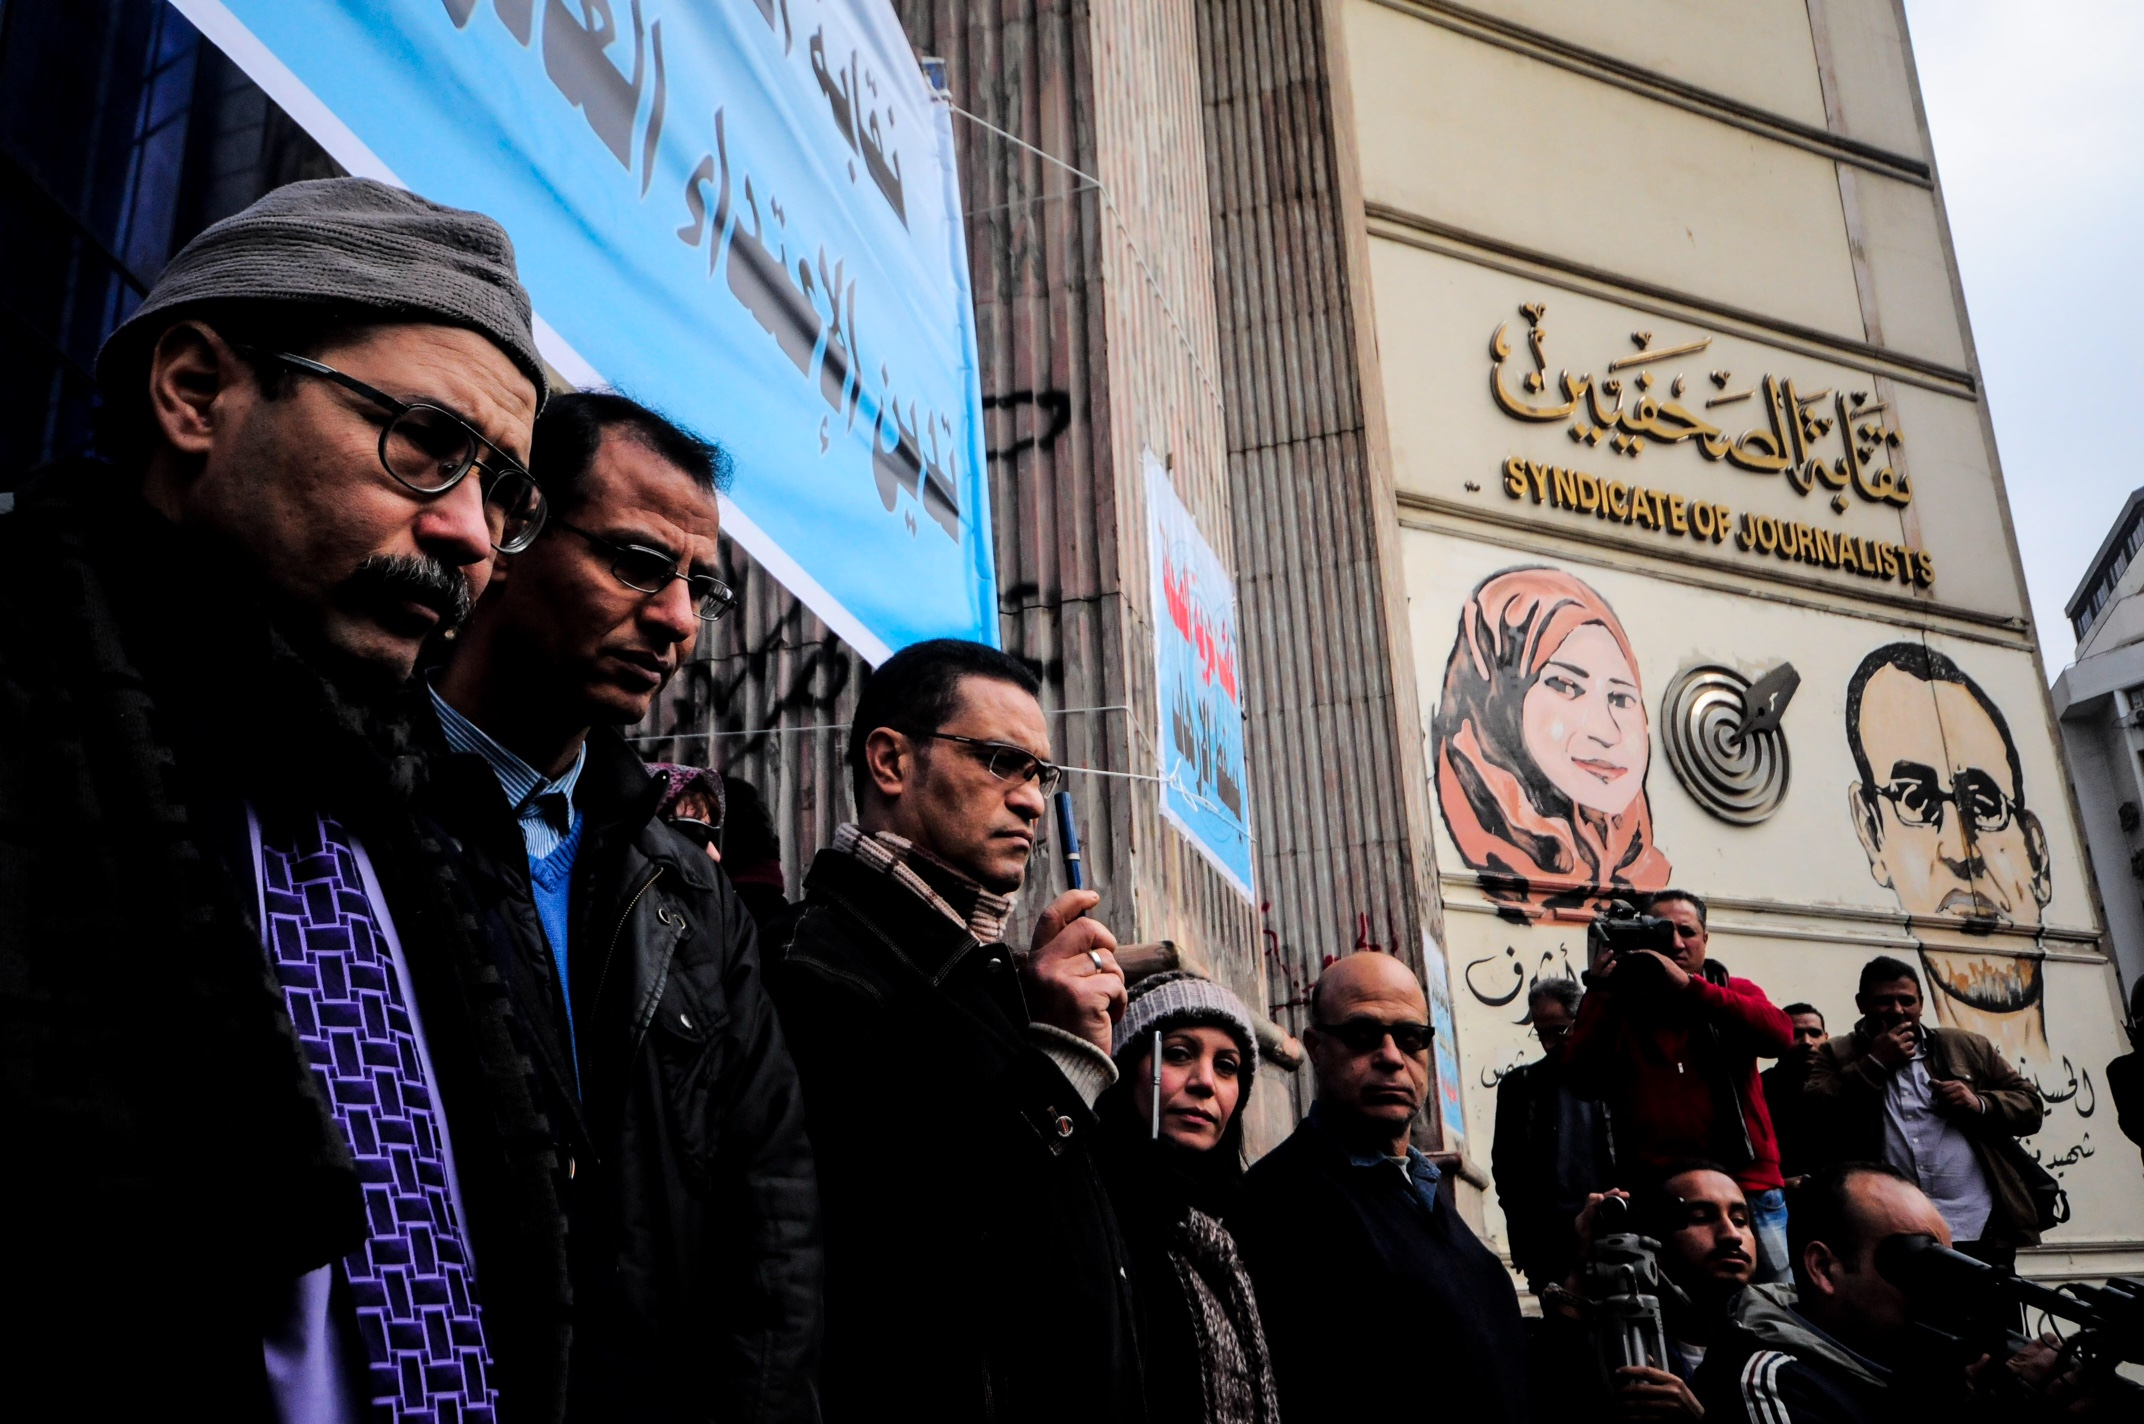 The Egyptian Press Syndicate located in downtown Cairo (Photo by Mahmoud Abou El Dahab/Daily News Egypt)